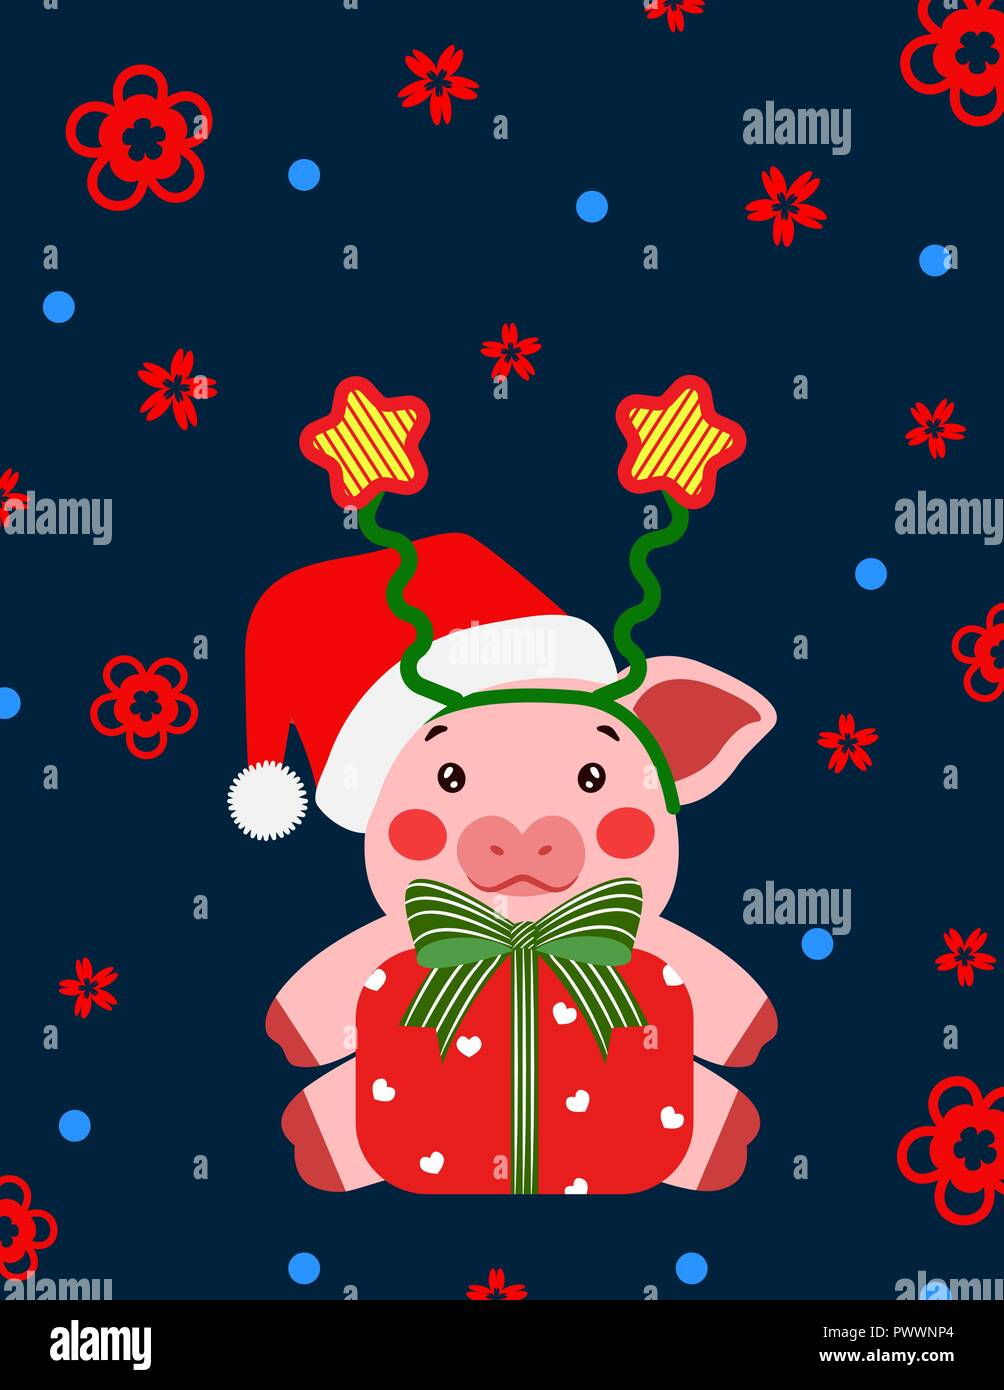 Pigs Chinese Stockfotos & Pigs Chinese Bilder - Alamy